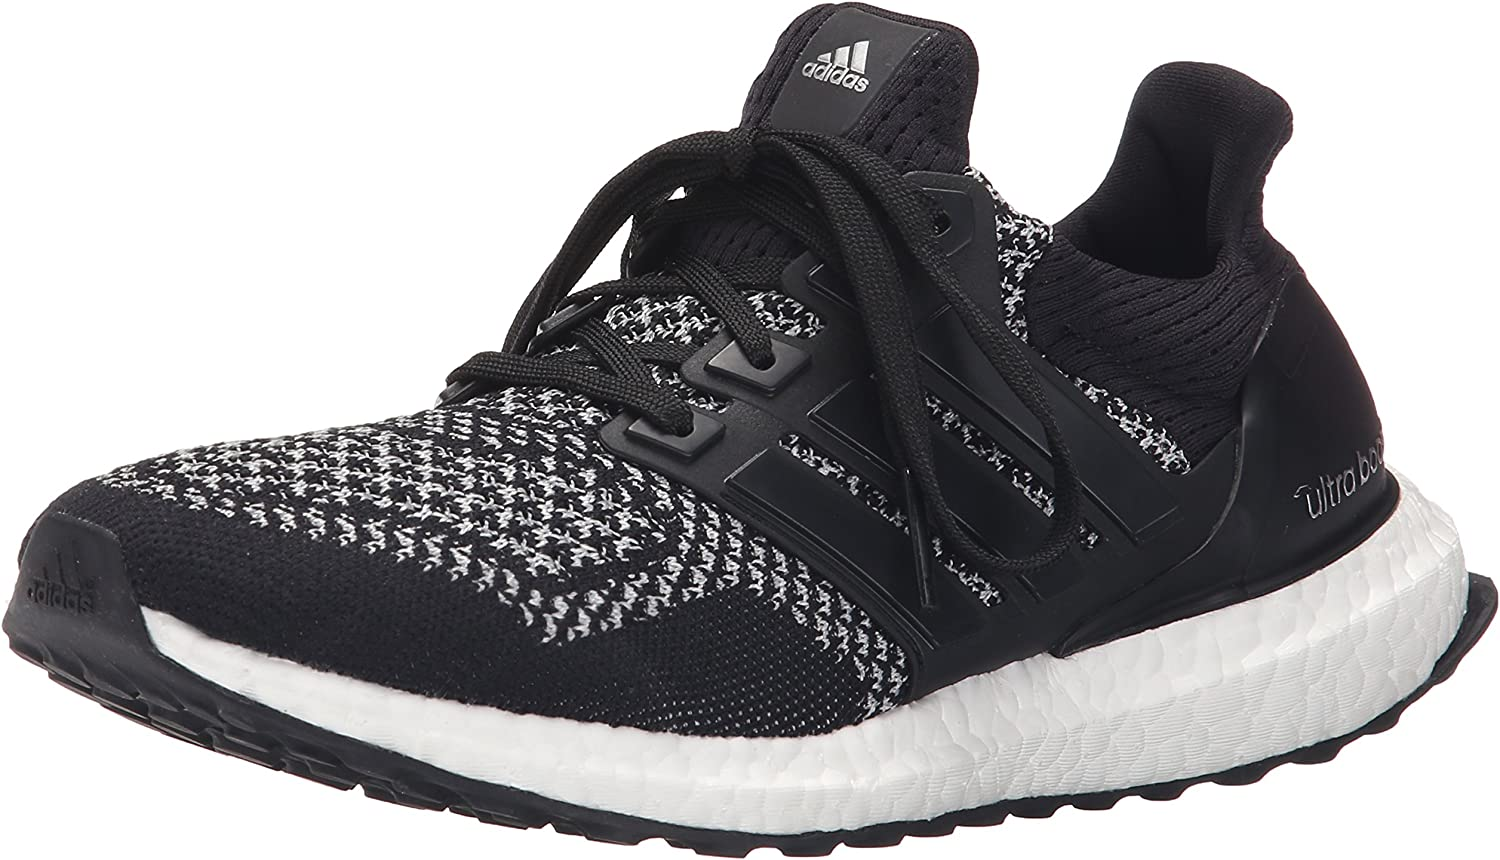 Adidas Performance Ultra Boost Limited Edition Running shoes